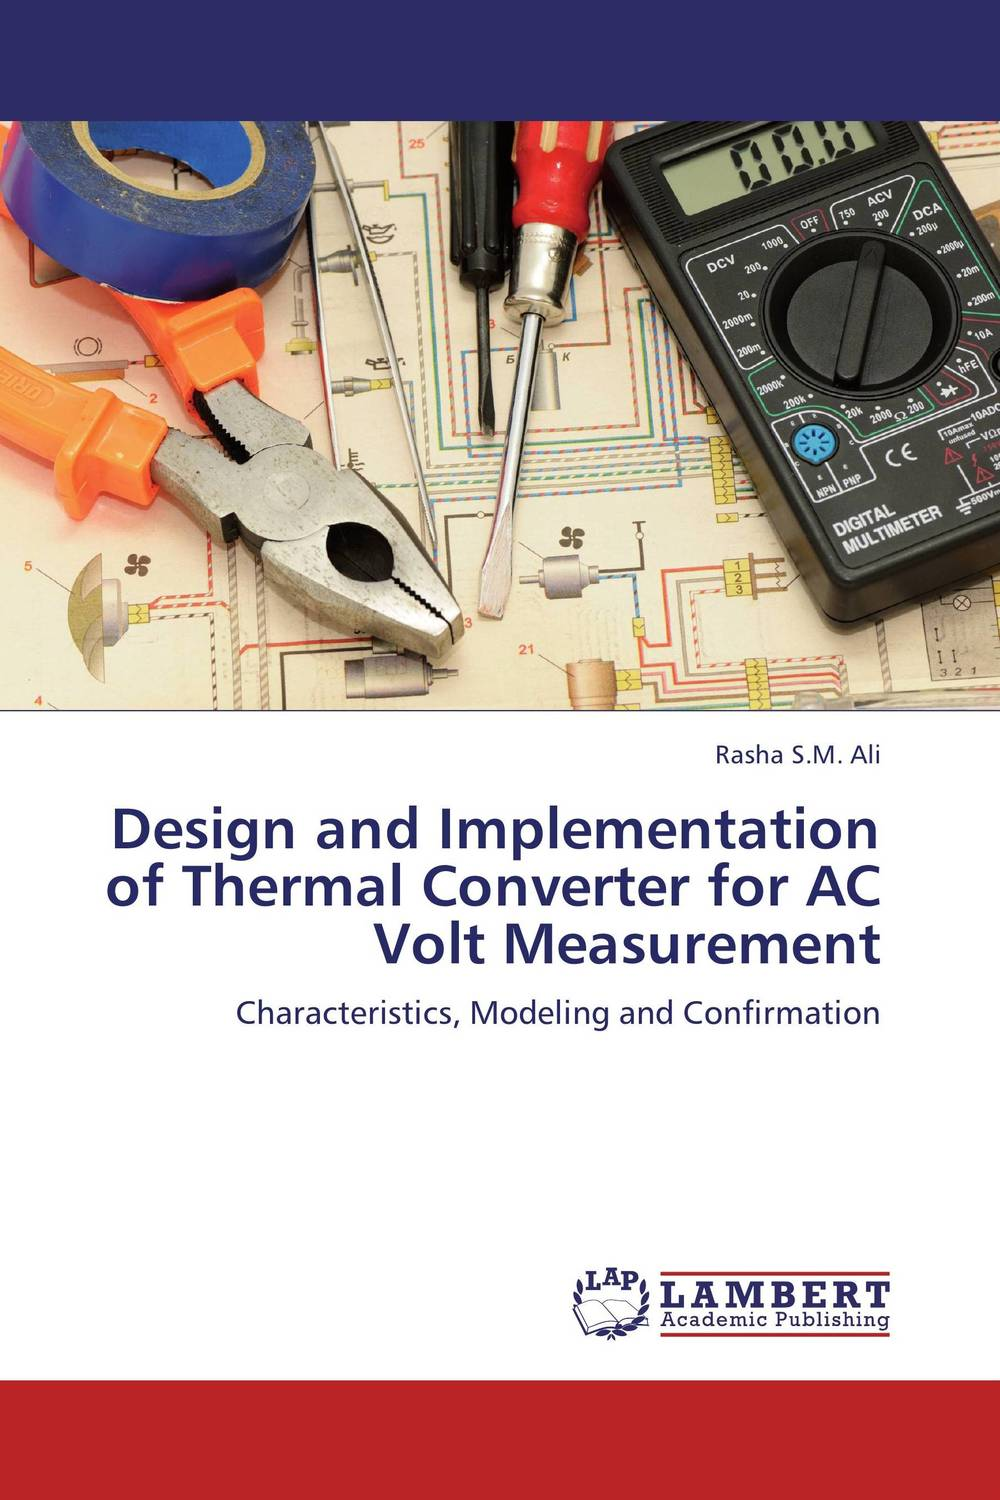 Design and Implementation of Thermal Converter for AC Volt Measurement tom mcnichol ac dc the savage tale of the first standards war